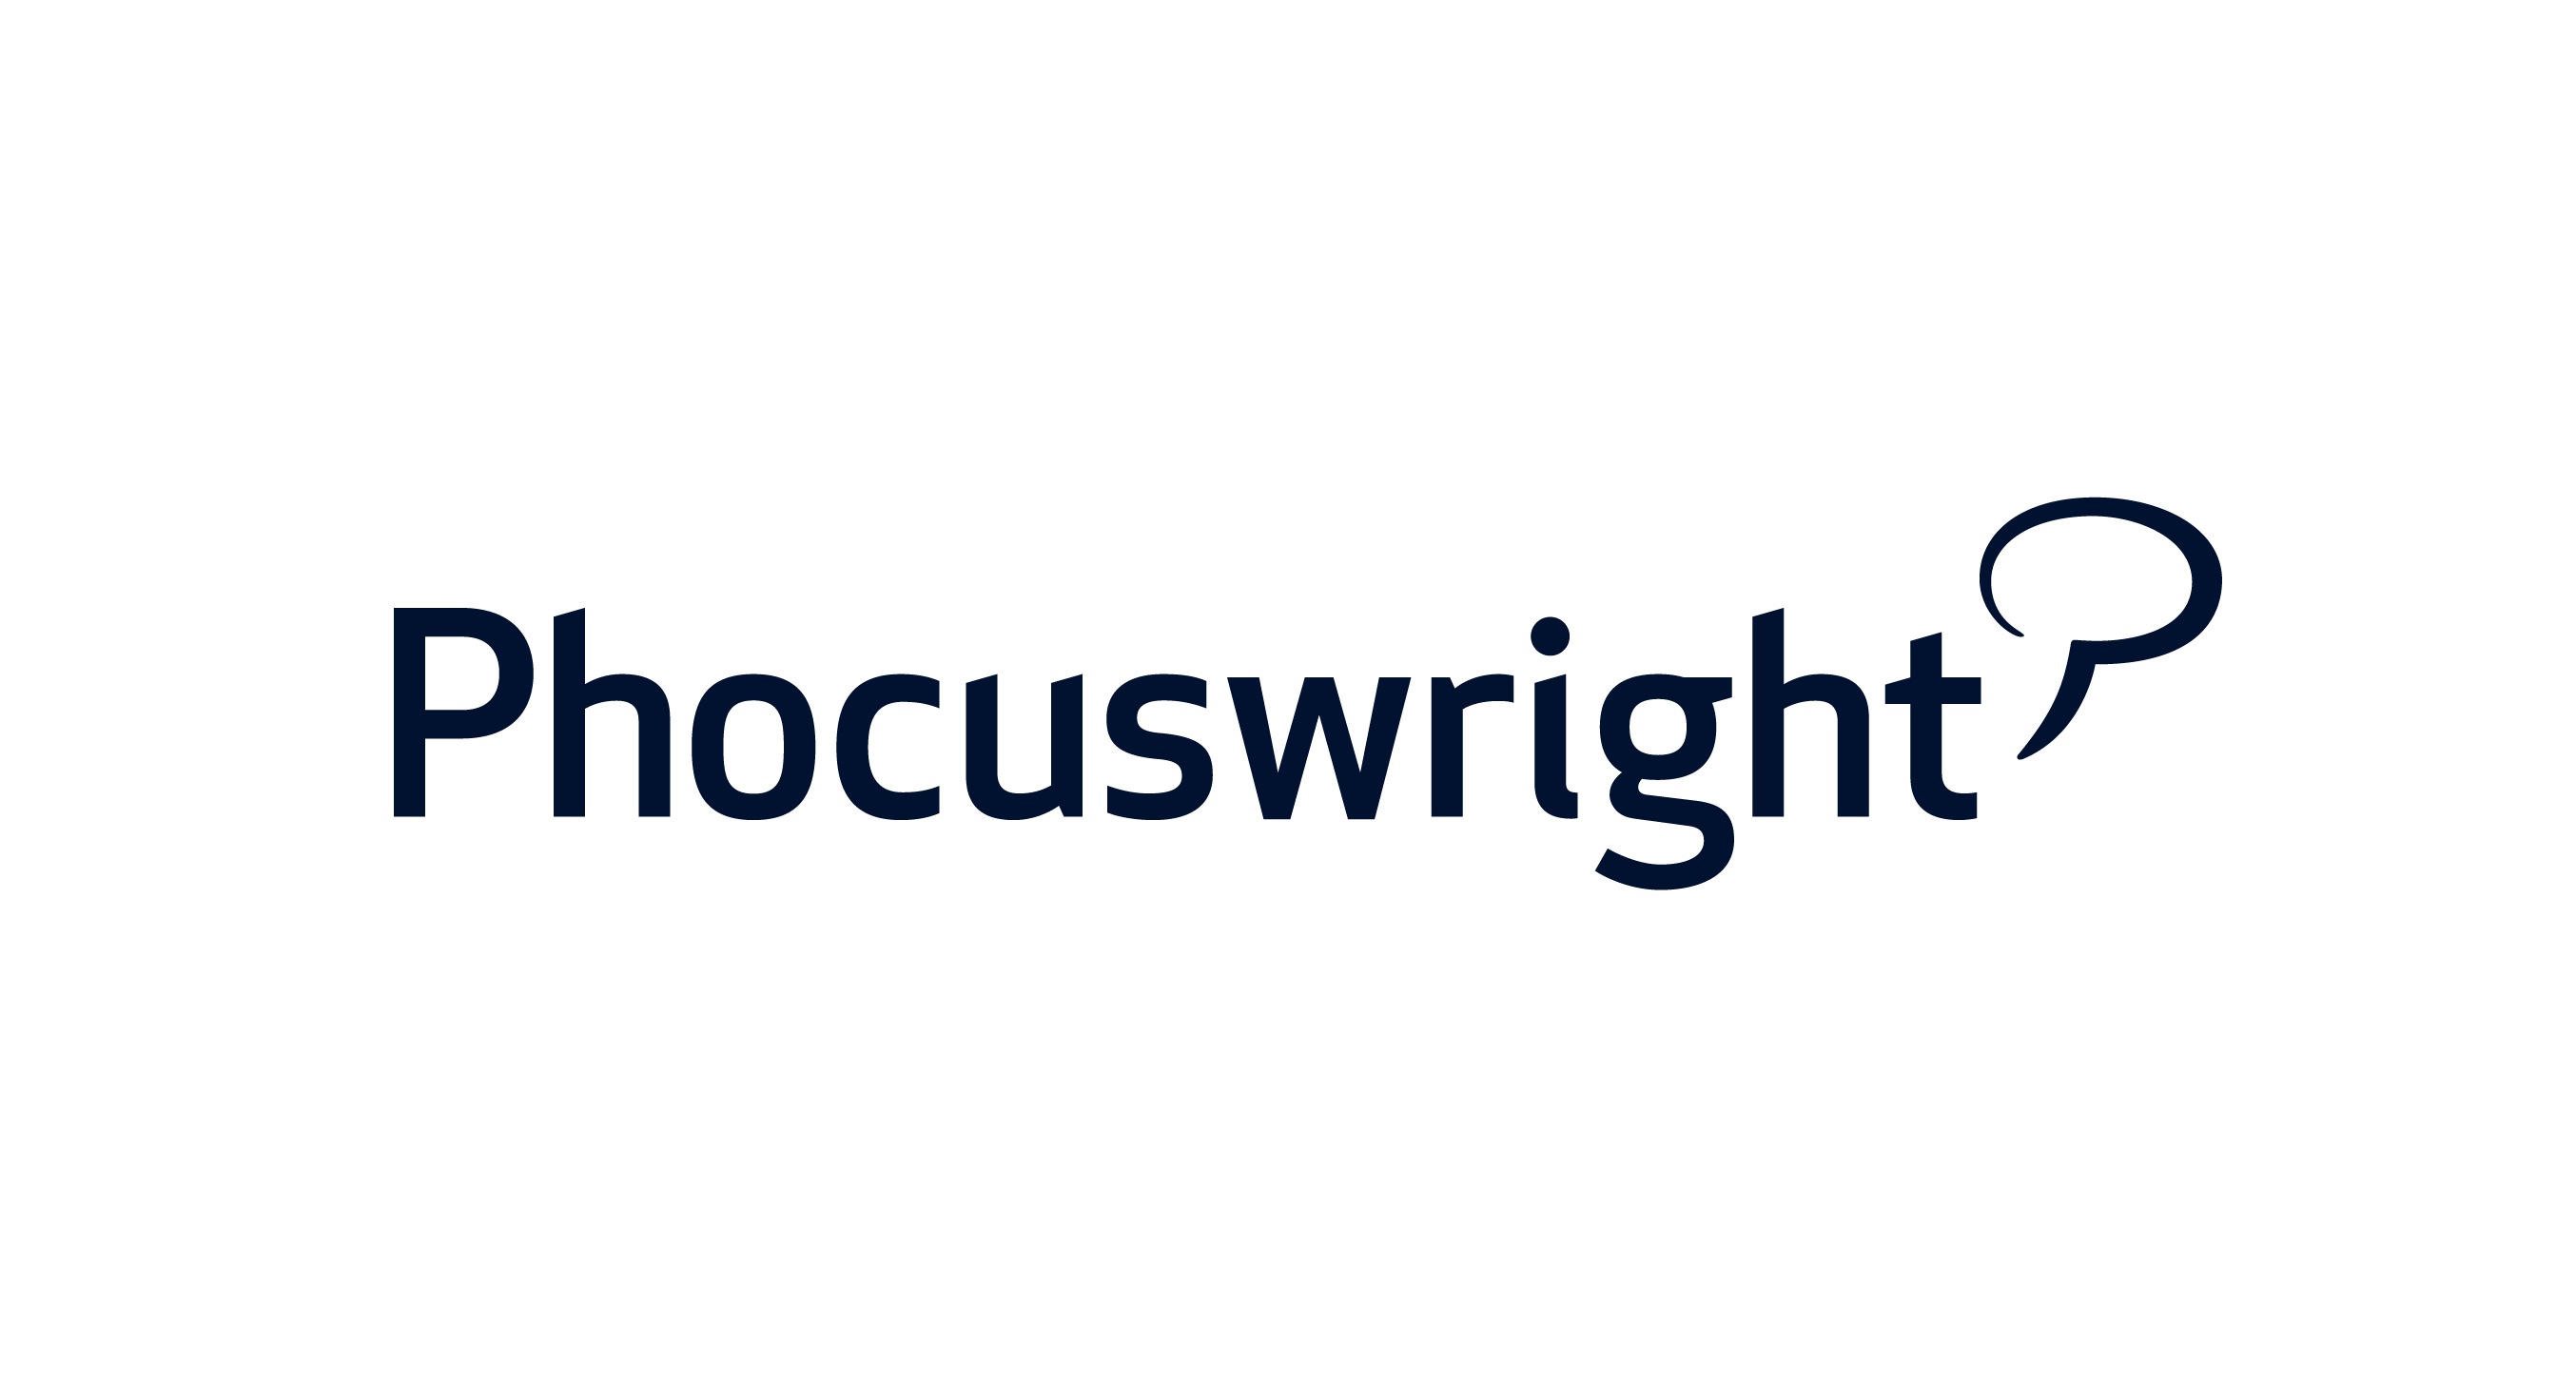 Phocuswright logo in conichi blue